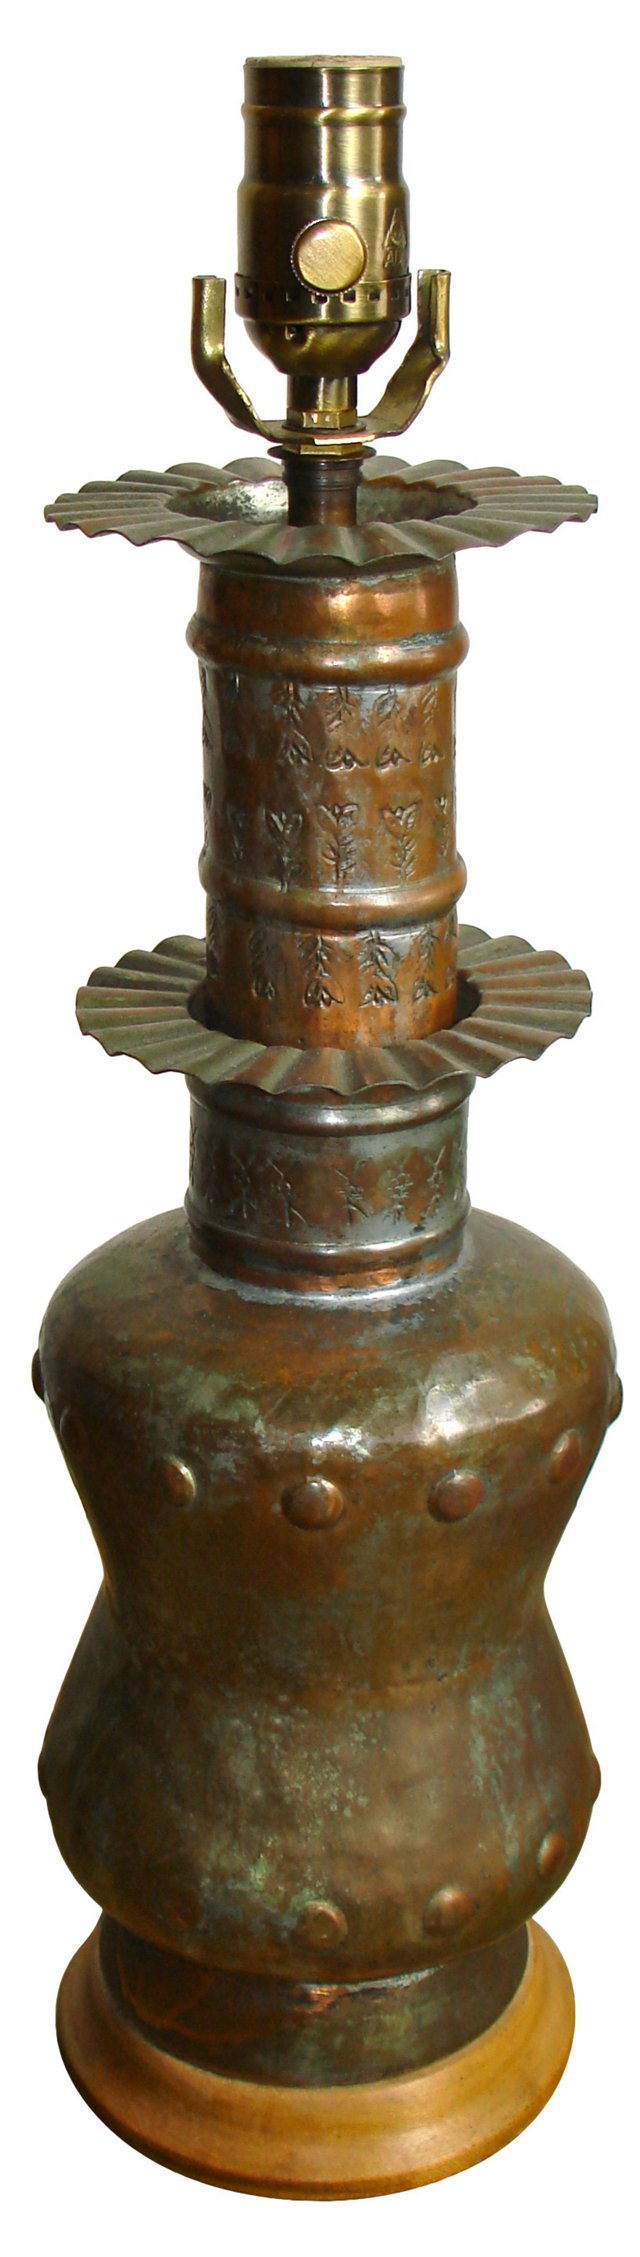 1960s Moroccan Coppered Tin Lamp